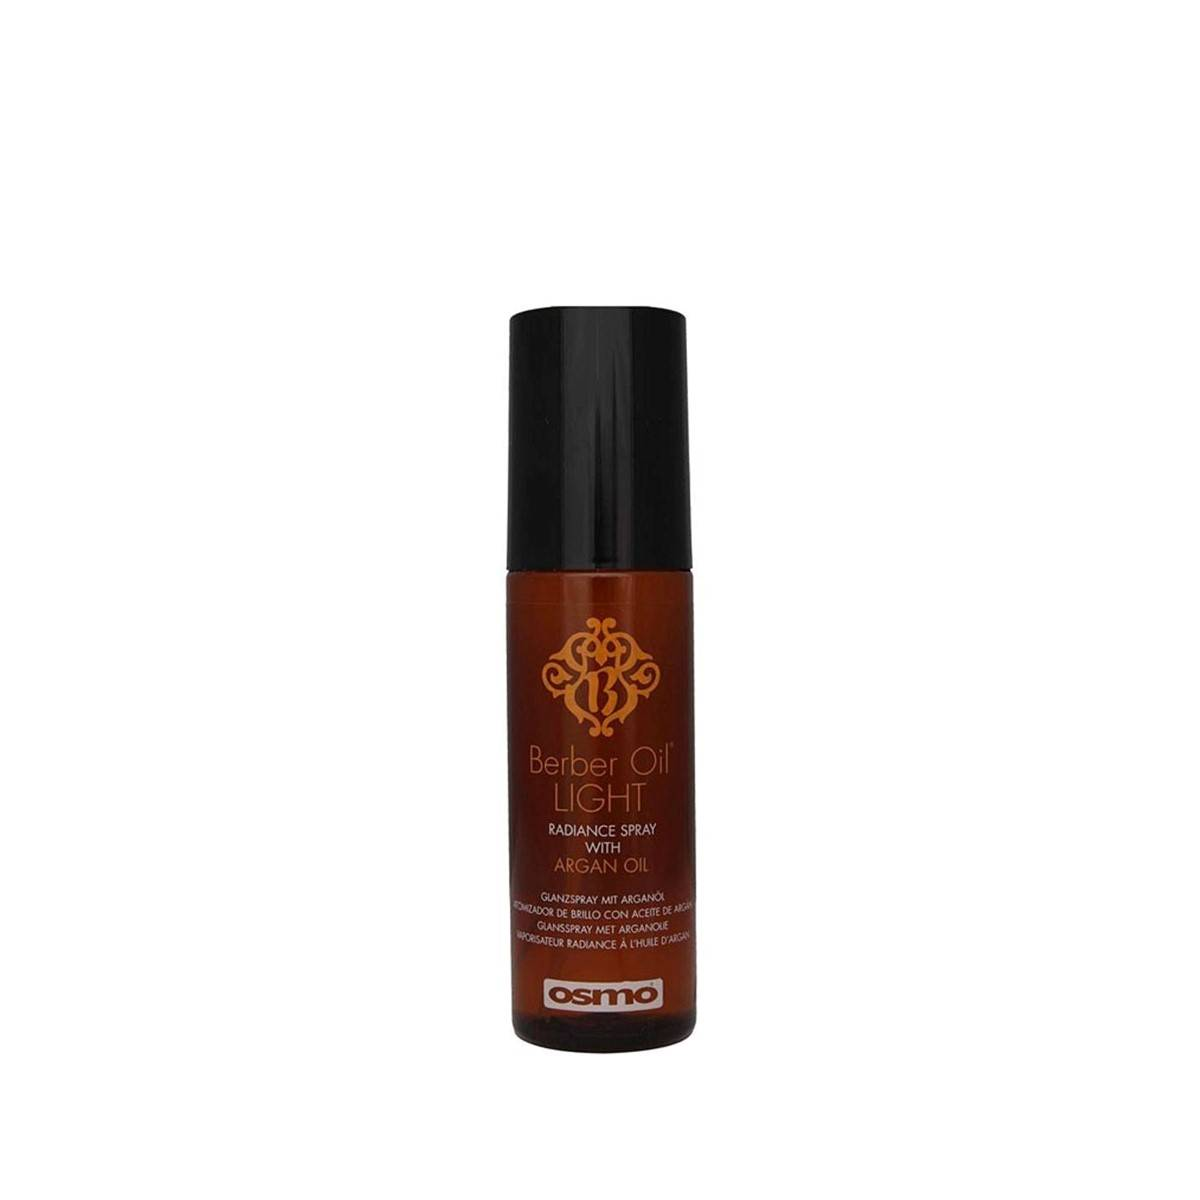 Berber Oil Light Radiance Spray 125ml  O